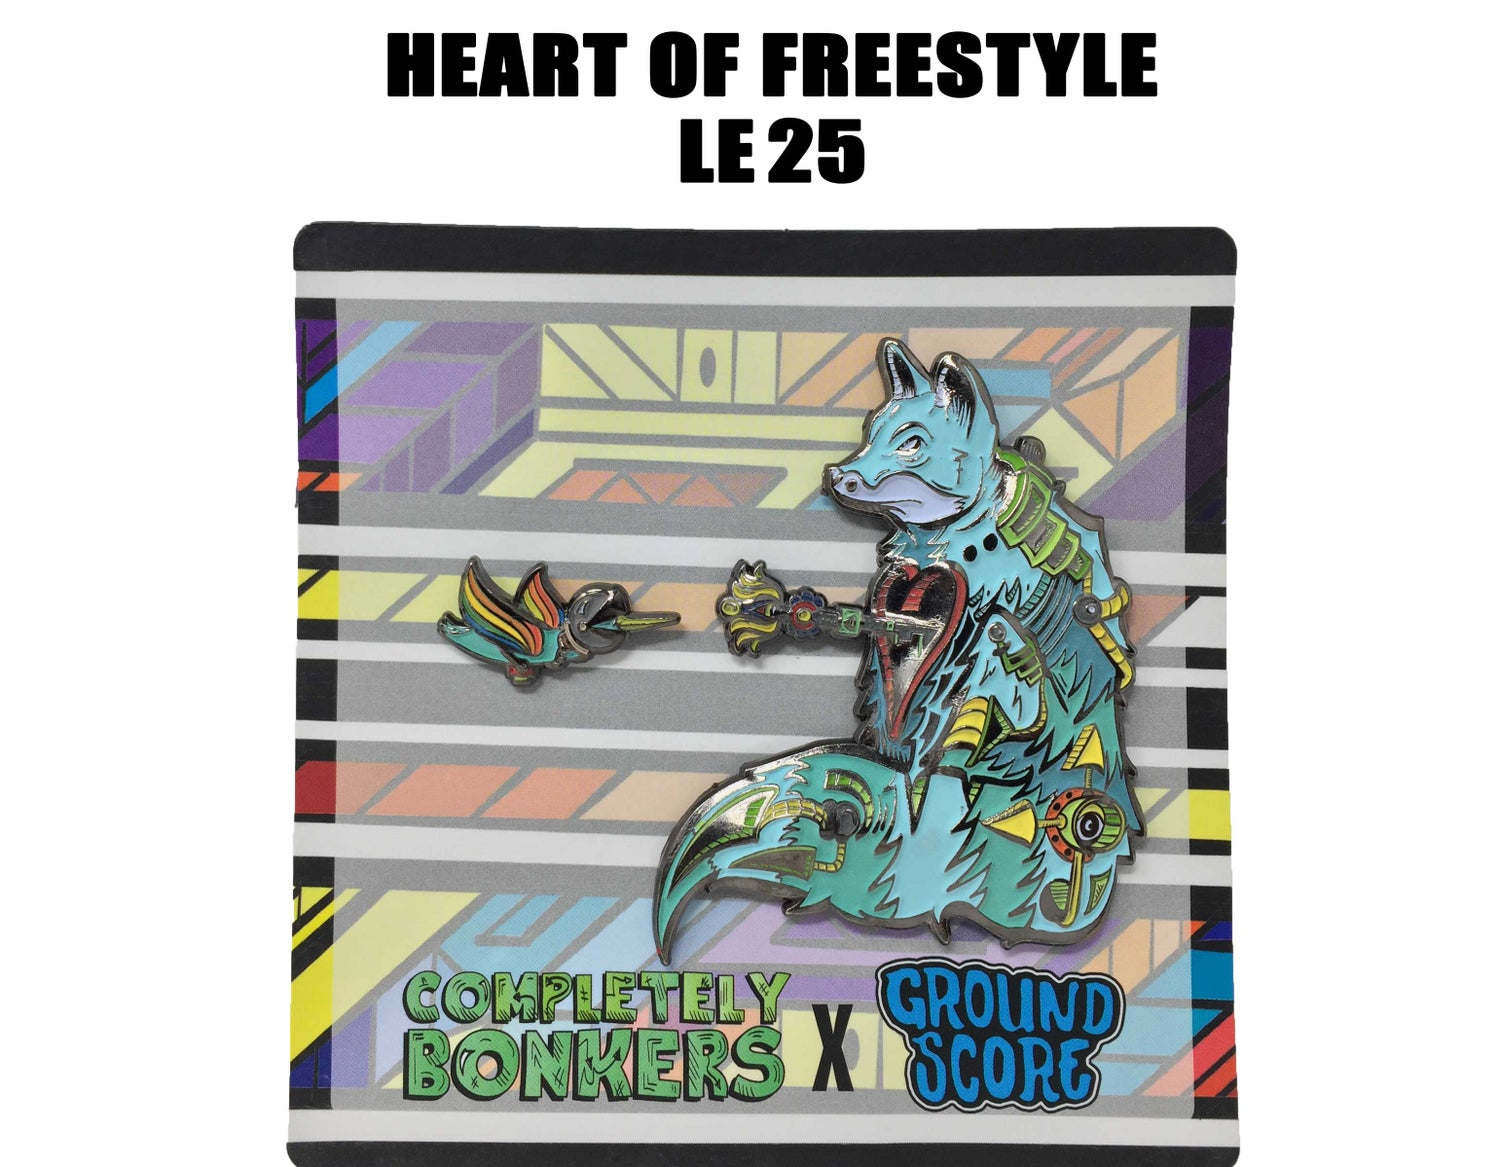 Completely Bonkers - Heart of Freestyle 3D Pin (LE 25 - OG)